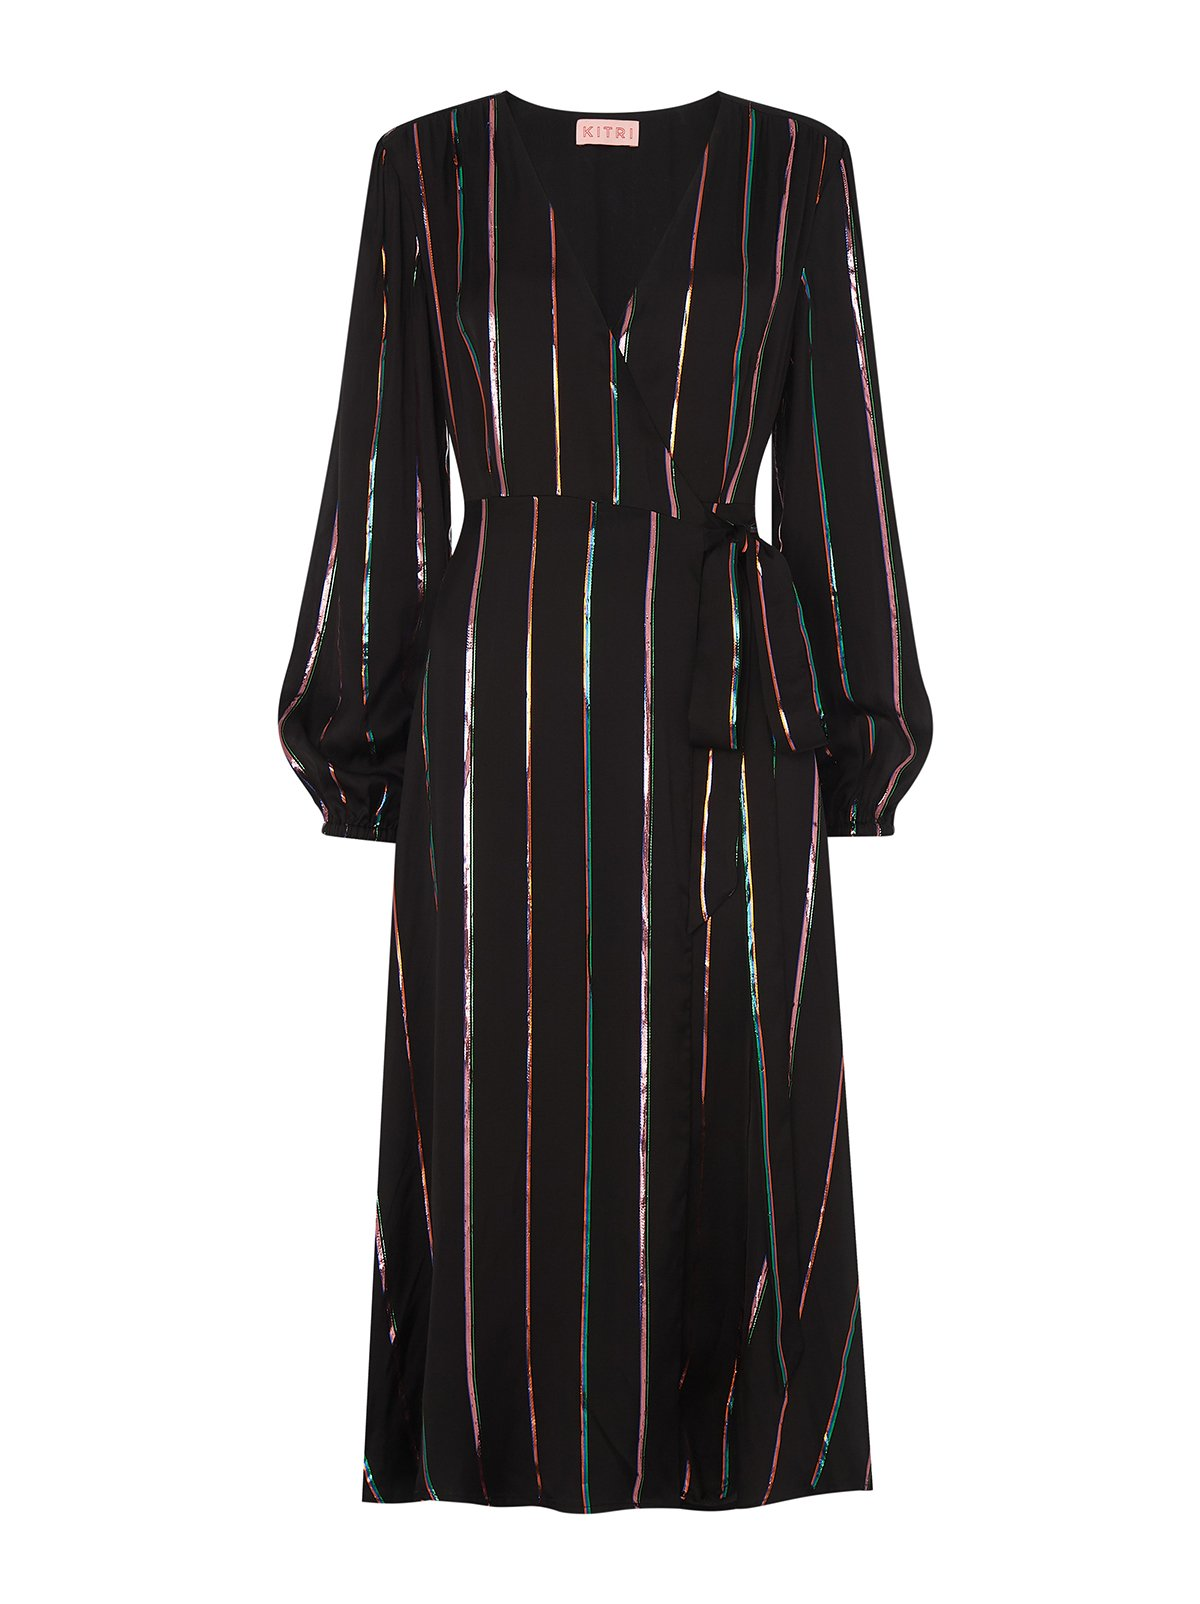 Diana Black Metallic Stripe Midi Wrap Dress by KITRI Studio